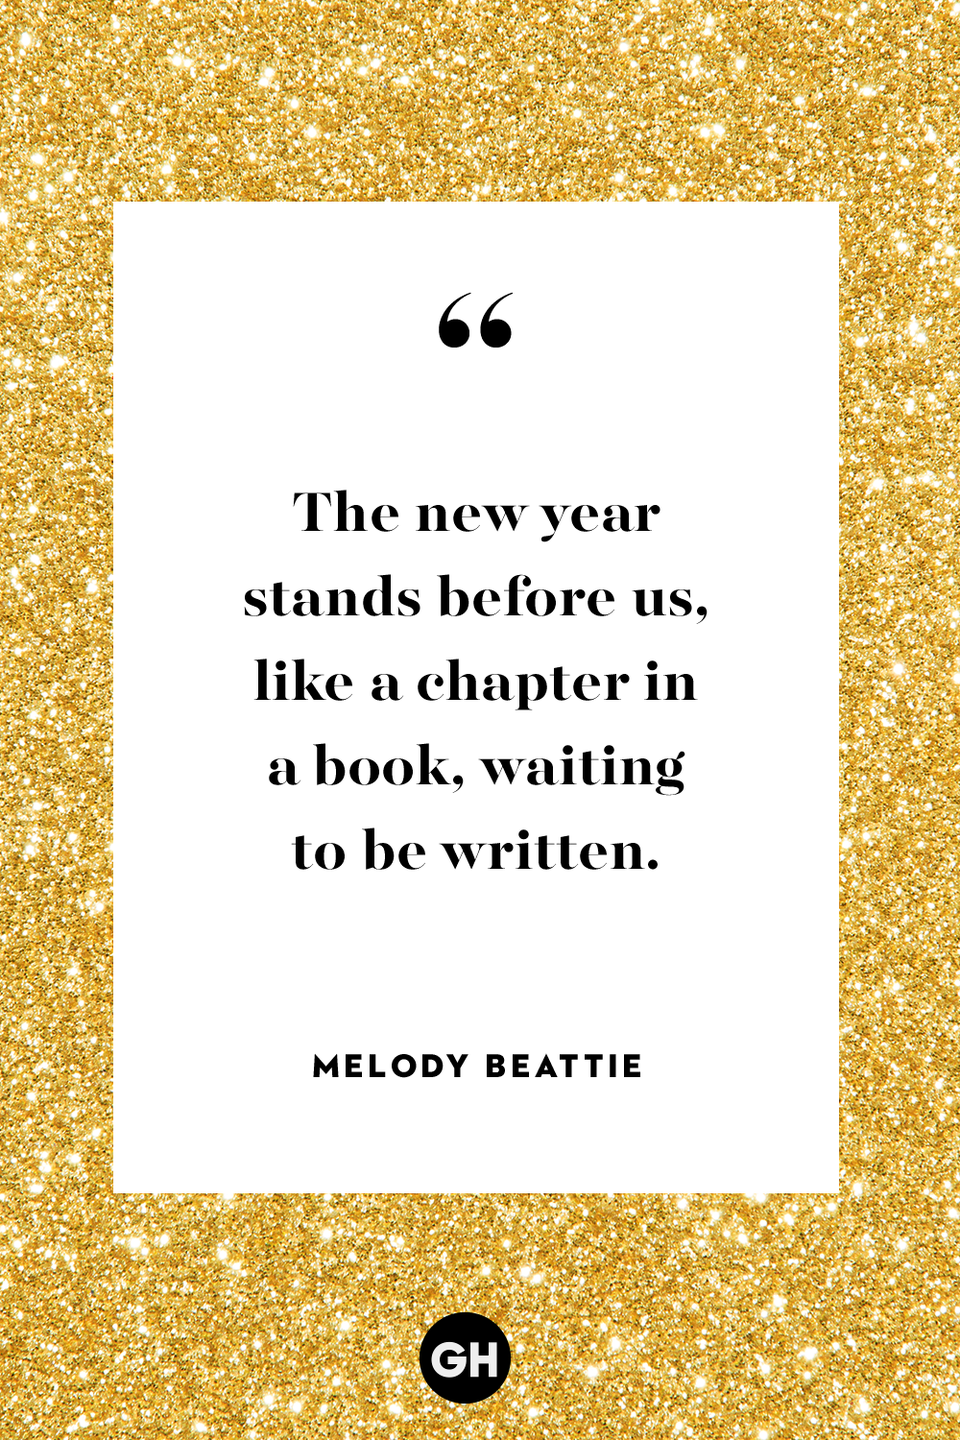 <p>The new year stands before us, like a chapter in a book, waiting to be written.</p>